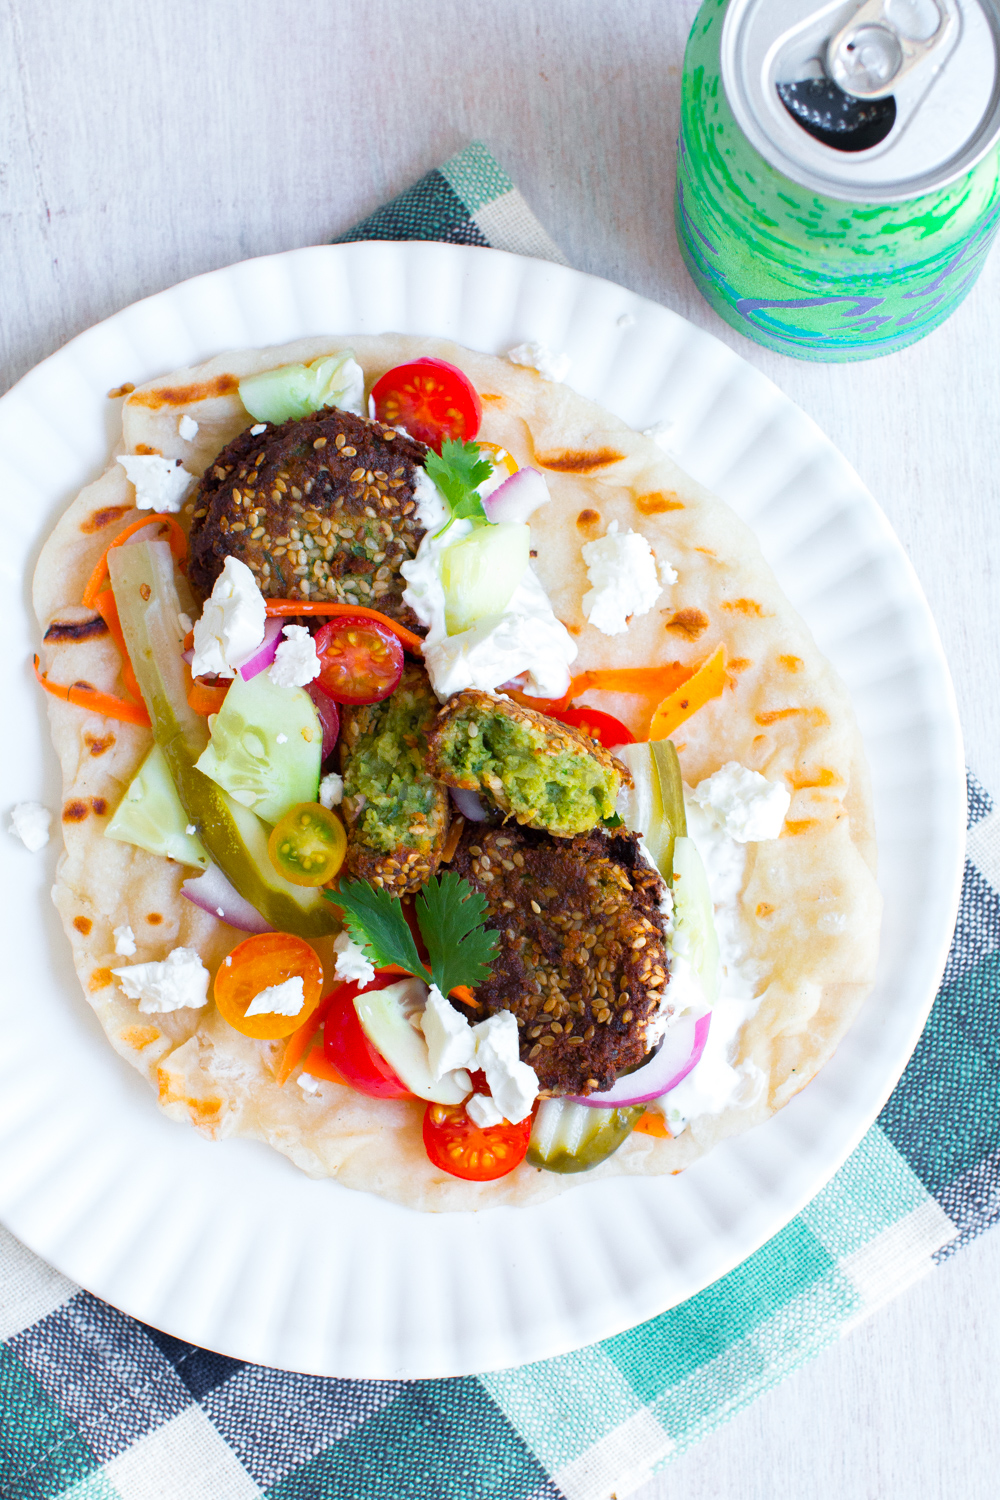 Falafel Pita adapted from The Sugar Hit by Baking The Goods. Served with La Croix, mmm.